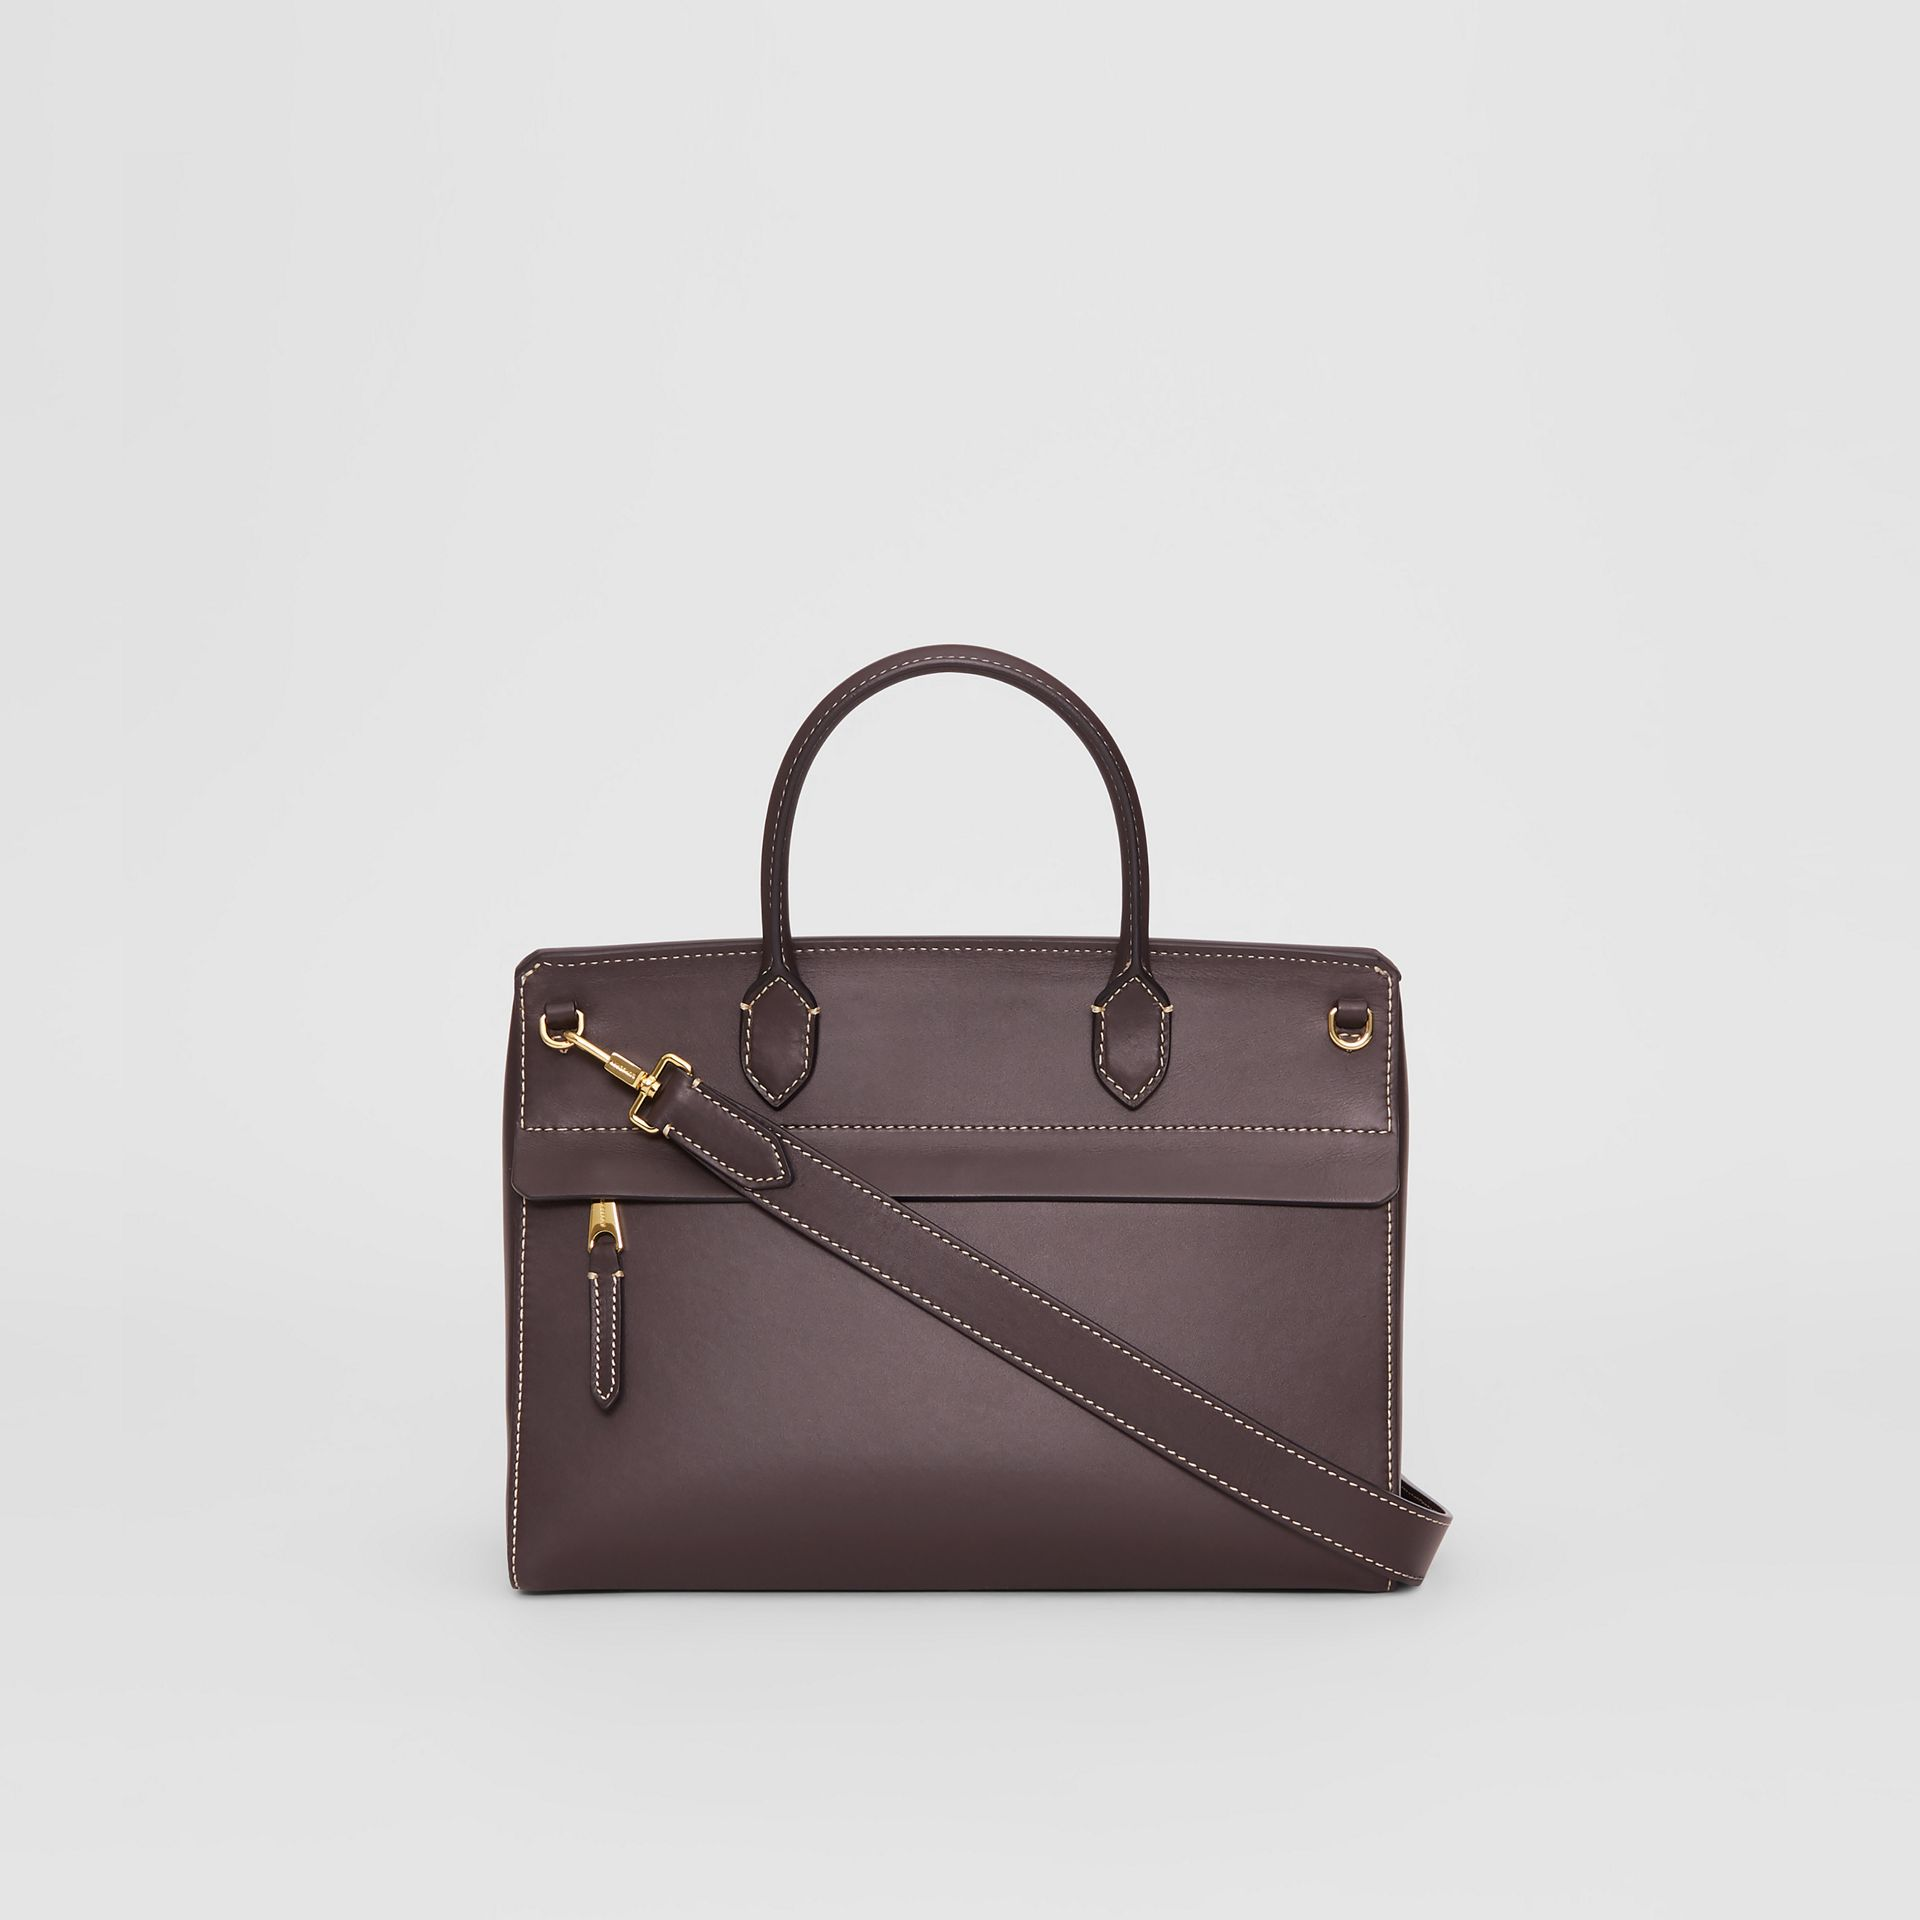 Small Leather Elizabeth Bag in Coffee - Women | Burberry Australia - gallery image 7